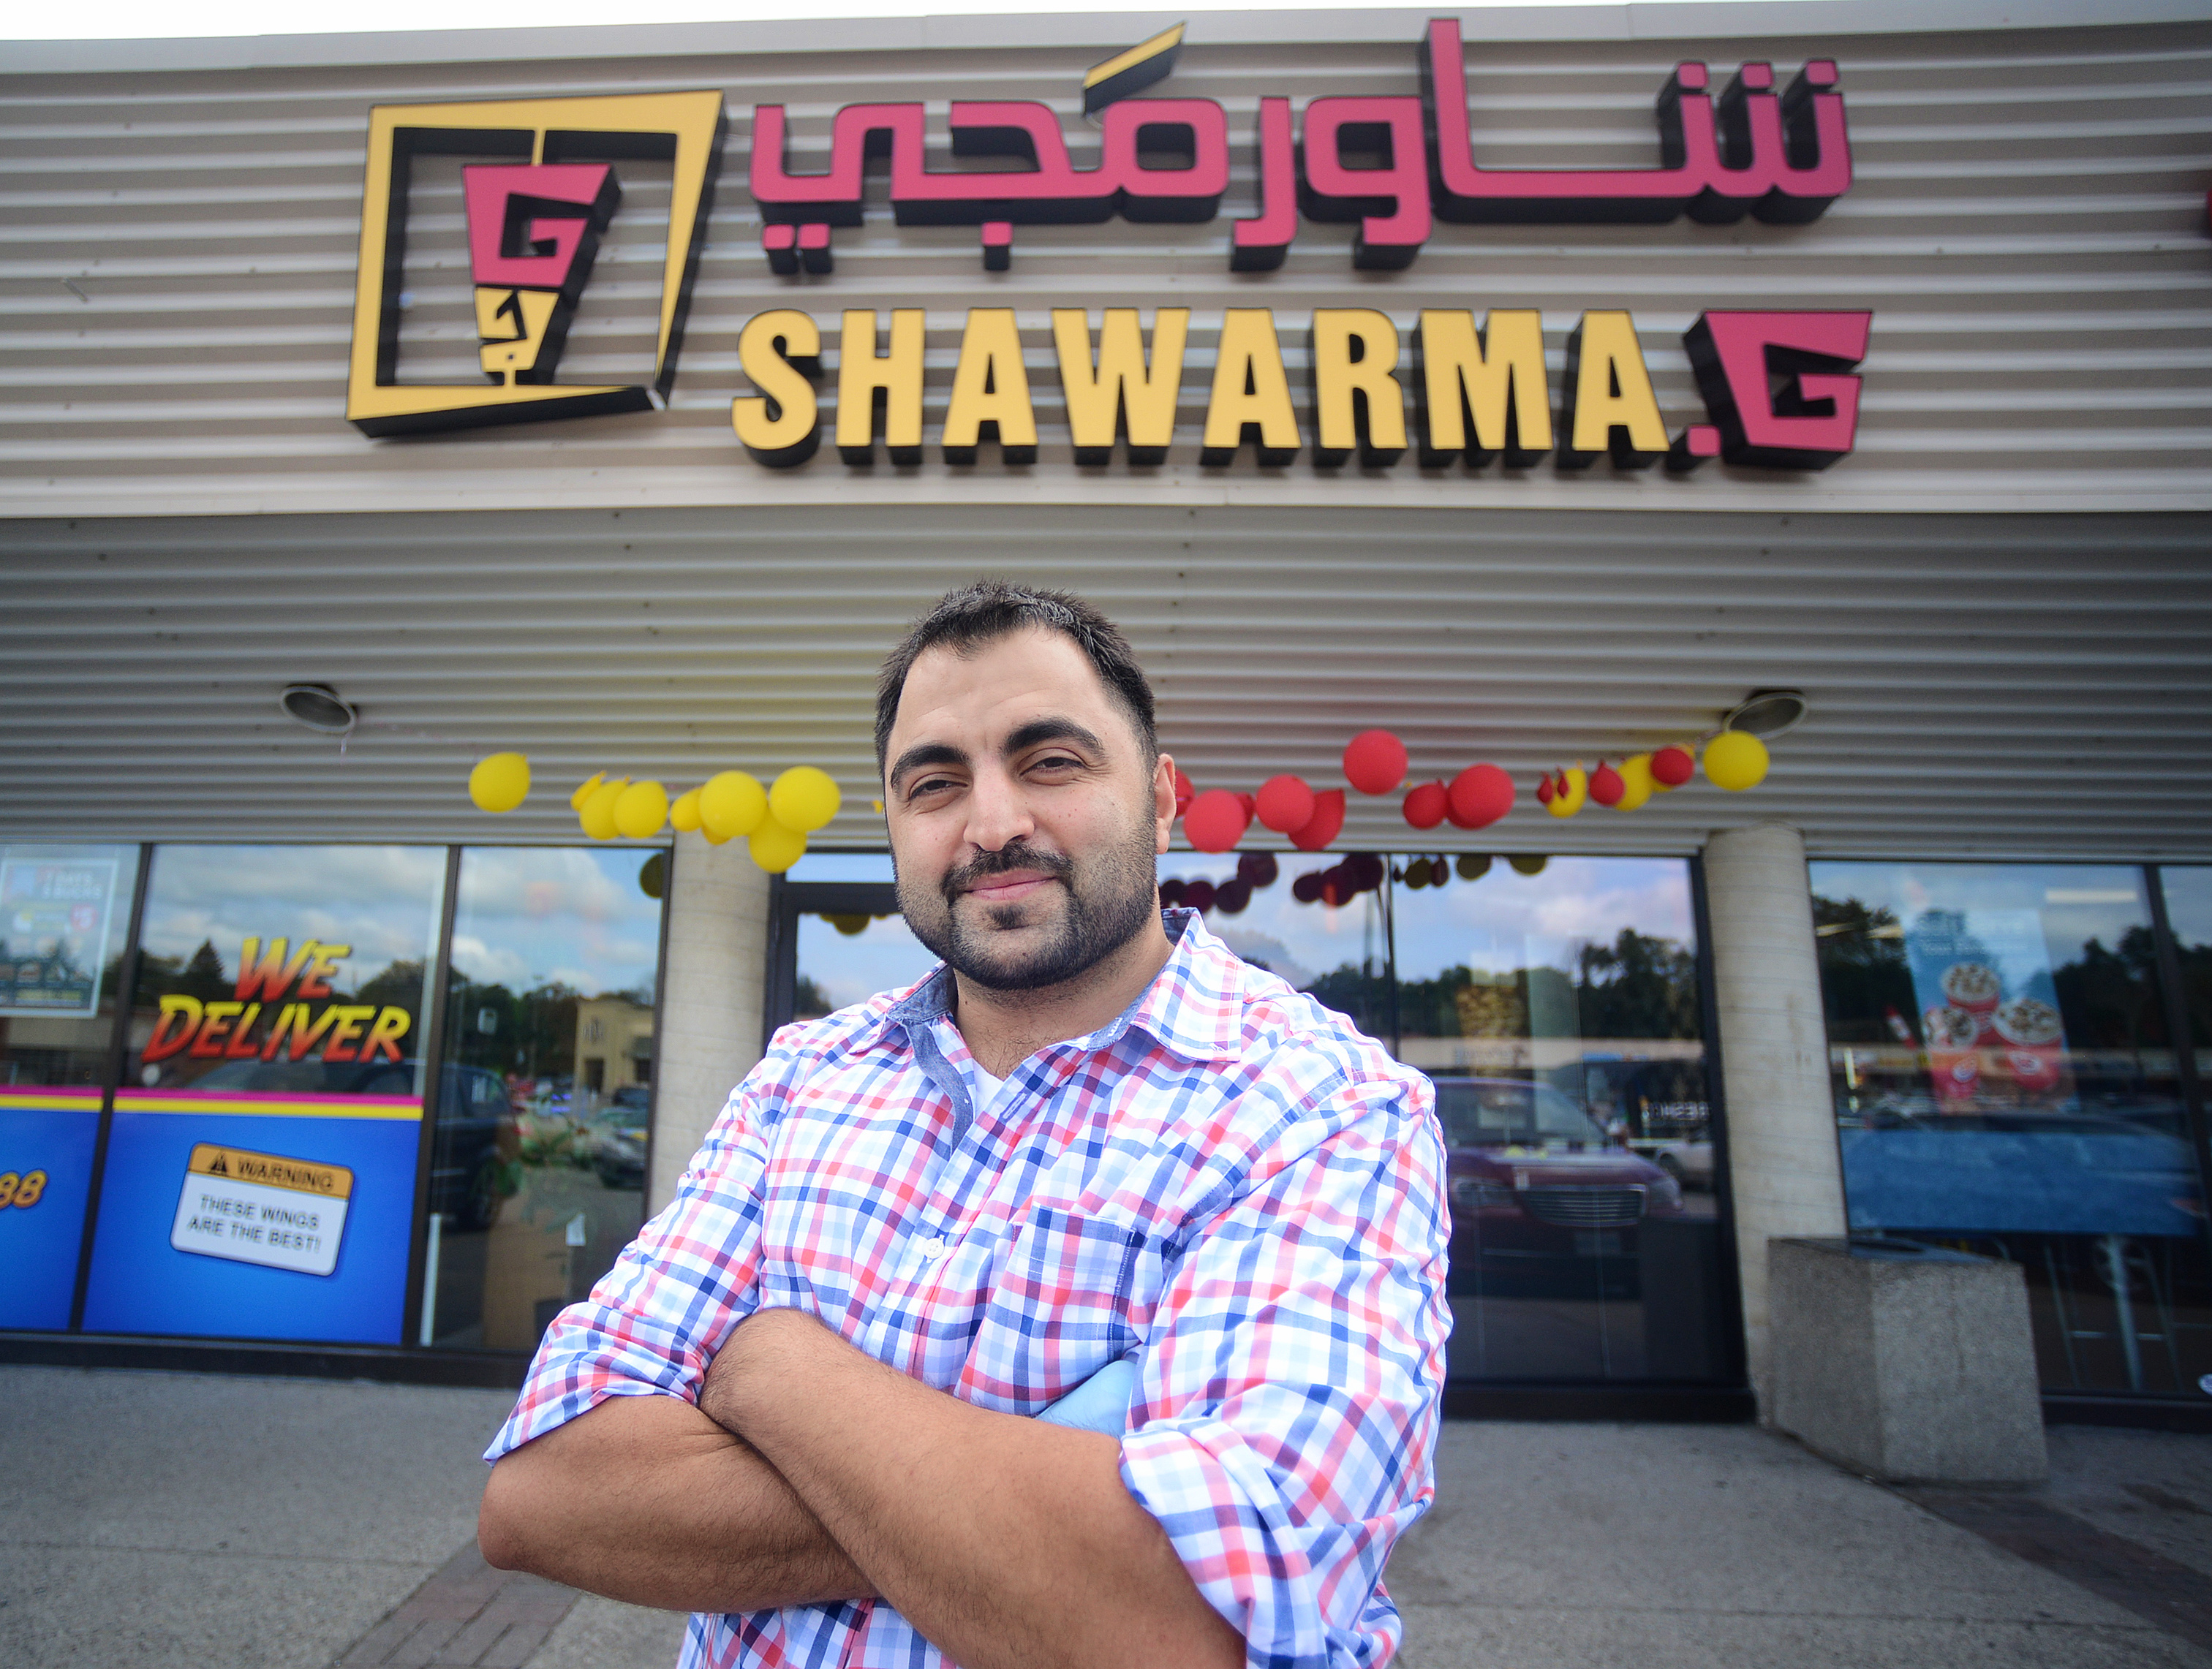 Guelph's latest shawarma restaurant owned and operated by Syrian refugees (Guelph Today, Aug 23/18).